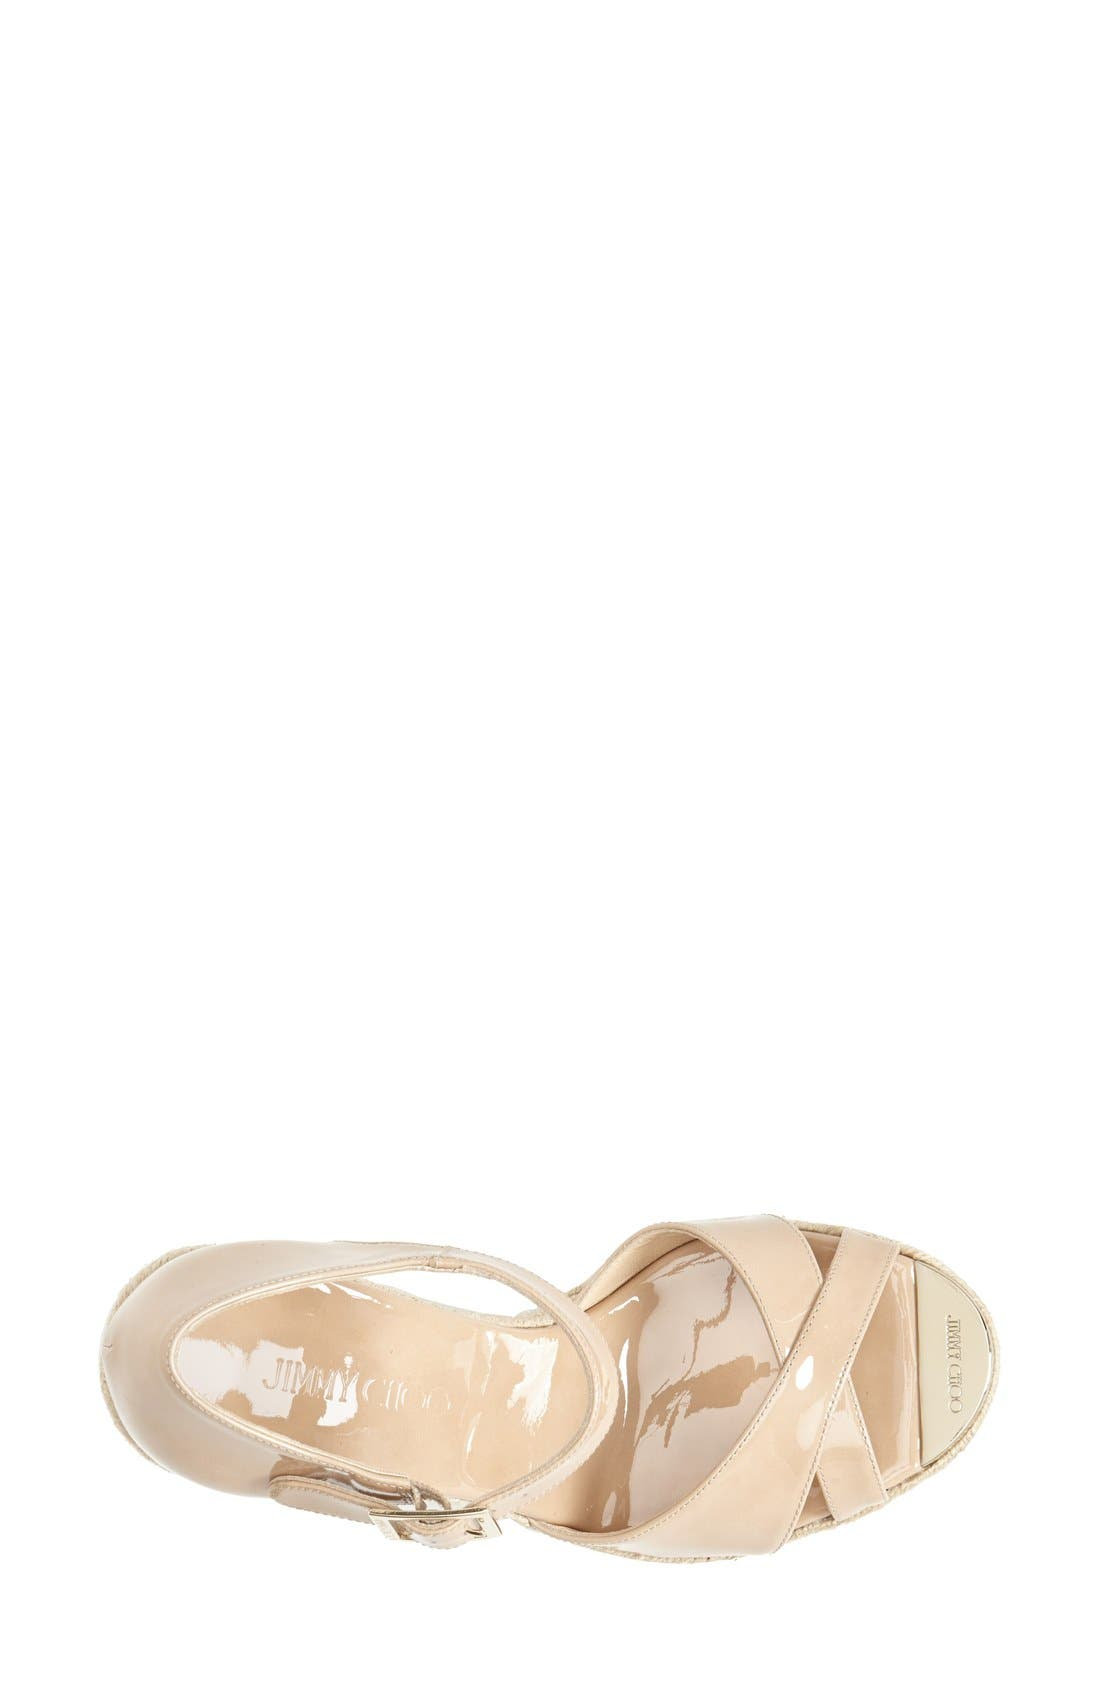 Alternate Image 3  - Jimmy Choo 'Pallis' Wedge Sandal (Nordstrom Exclusive)